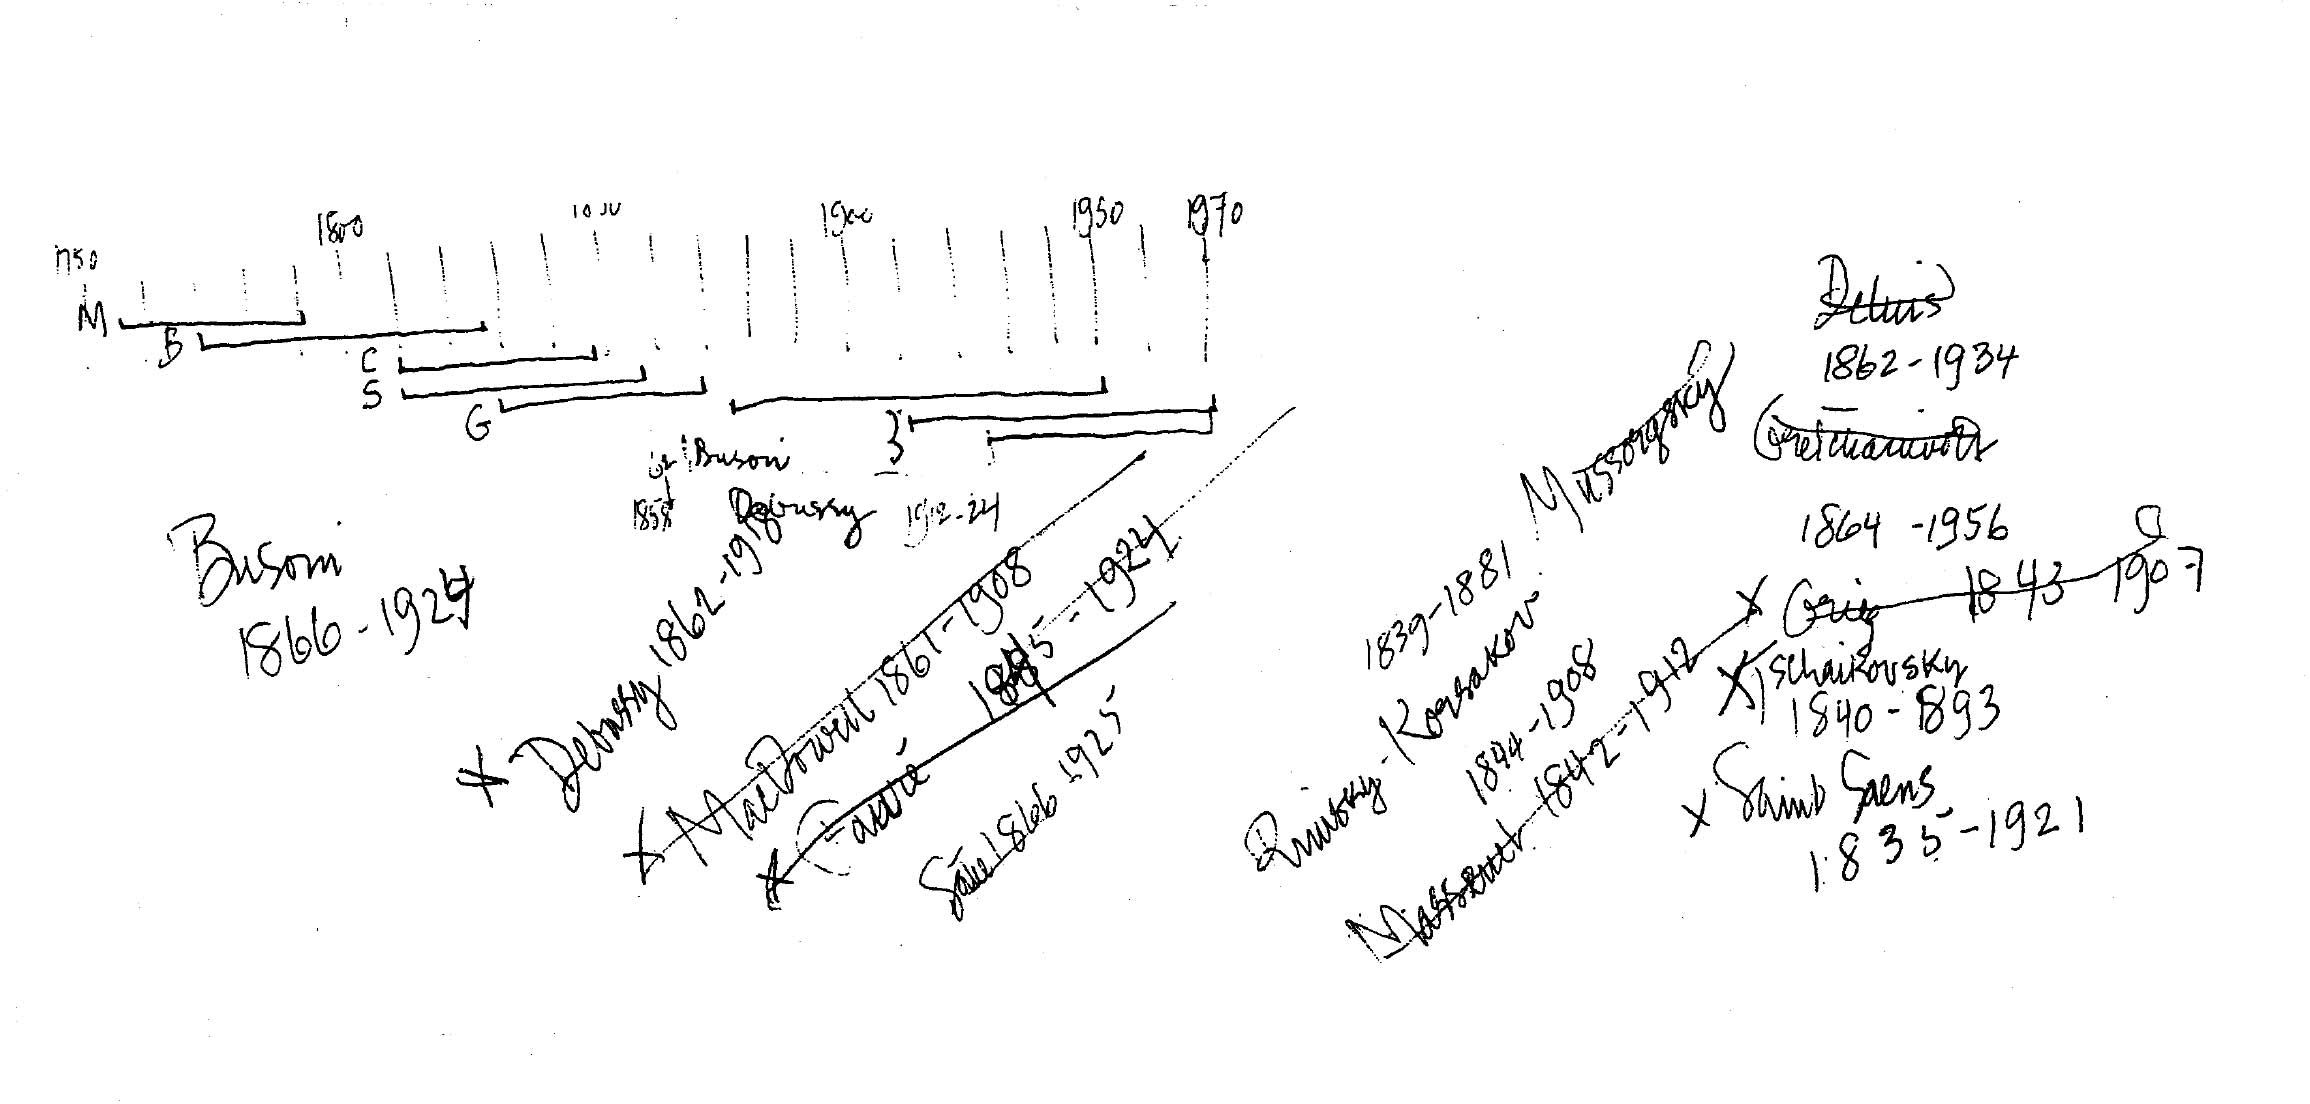 A timeline of the composers to use in HPSCHD, with their dates of birth and death. On the right a series of alternatives for a possible replacement of Ives. Manuscript Collection of John Cage's New York Public Library in New York.